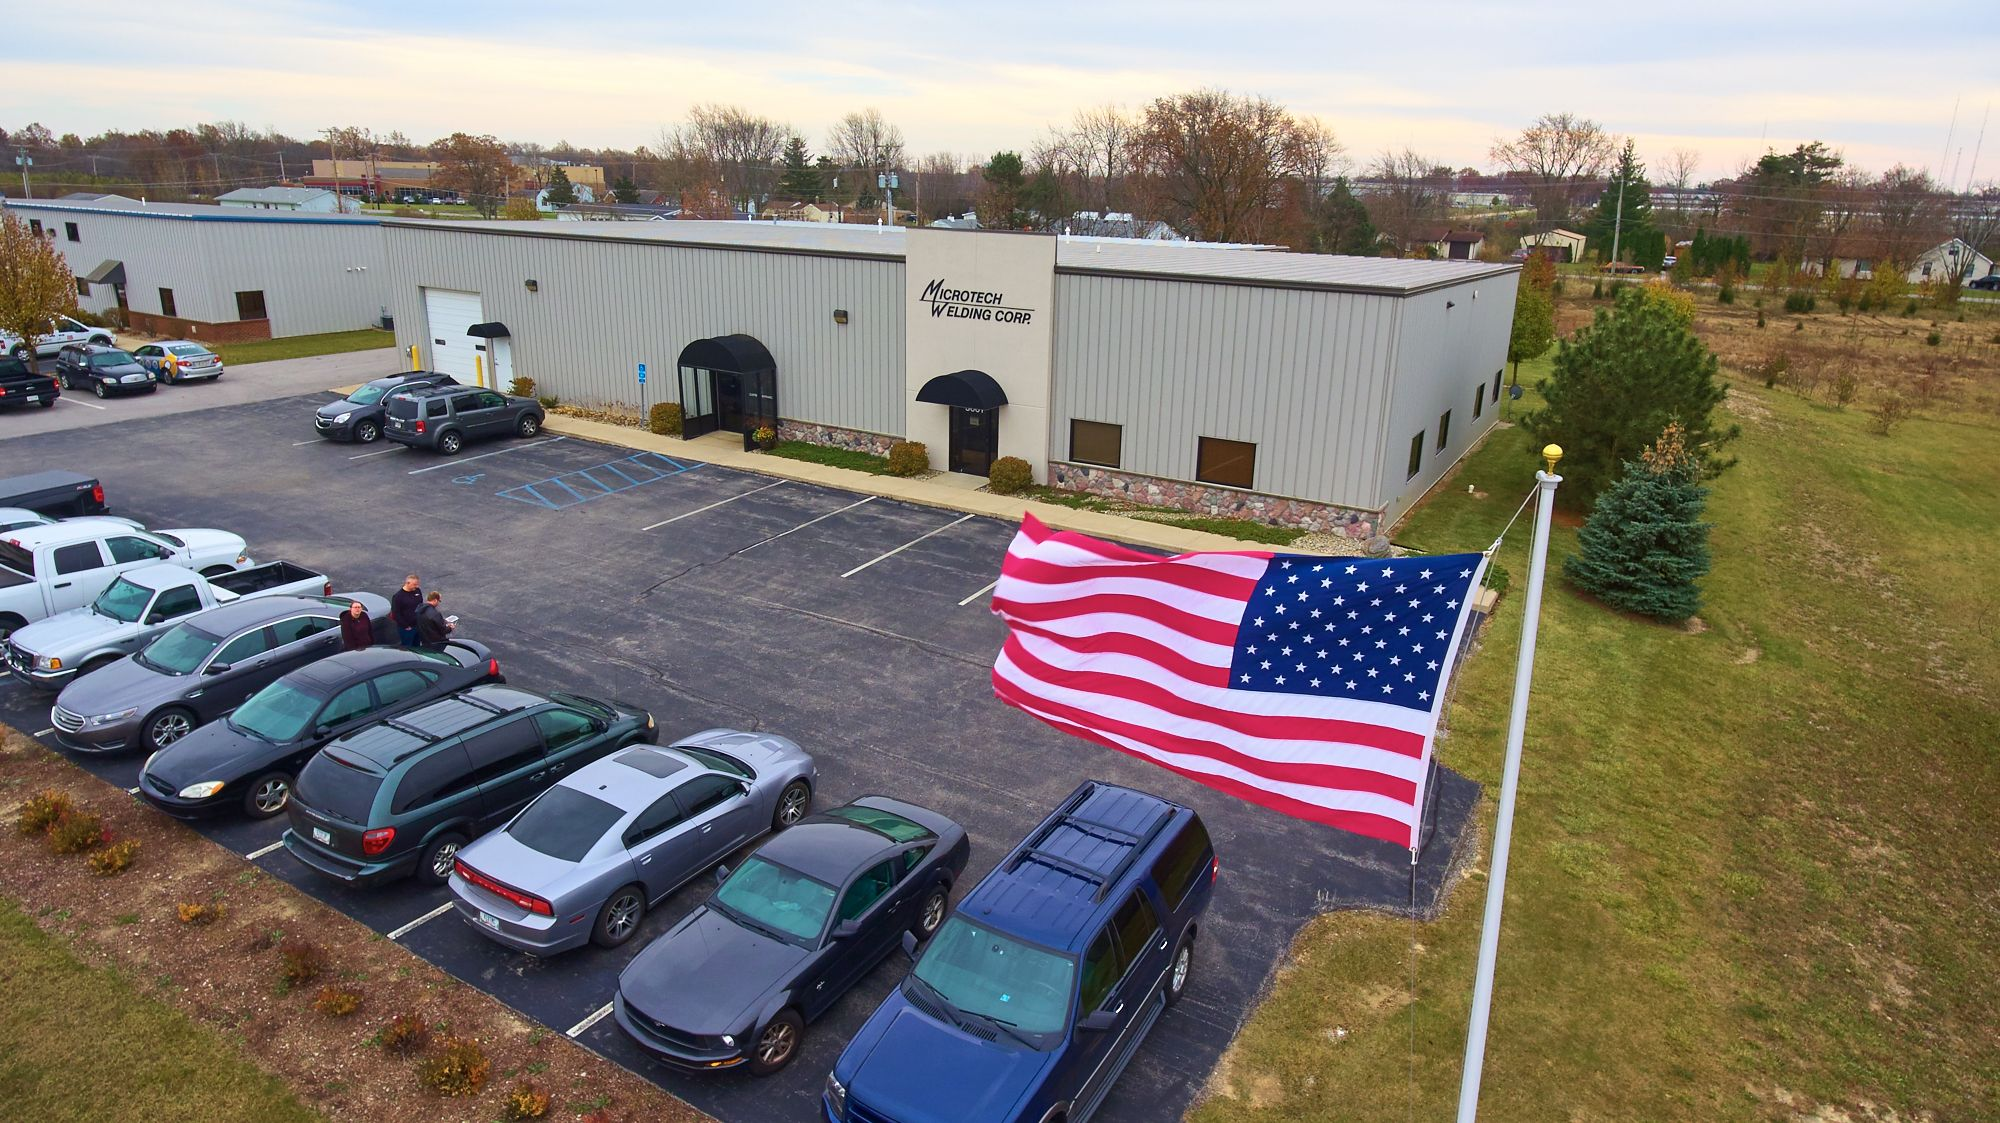 Outside the Fort Wayne Microtech facility with American Flag waving in the breeze